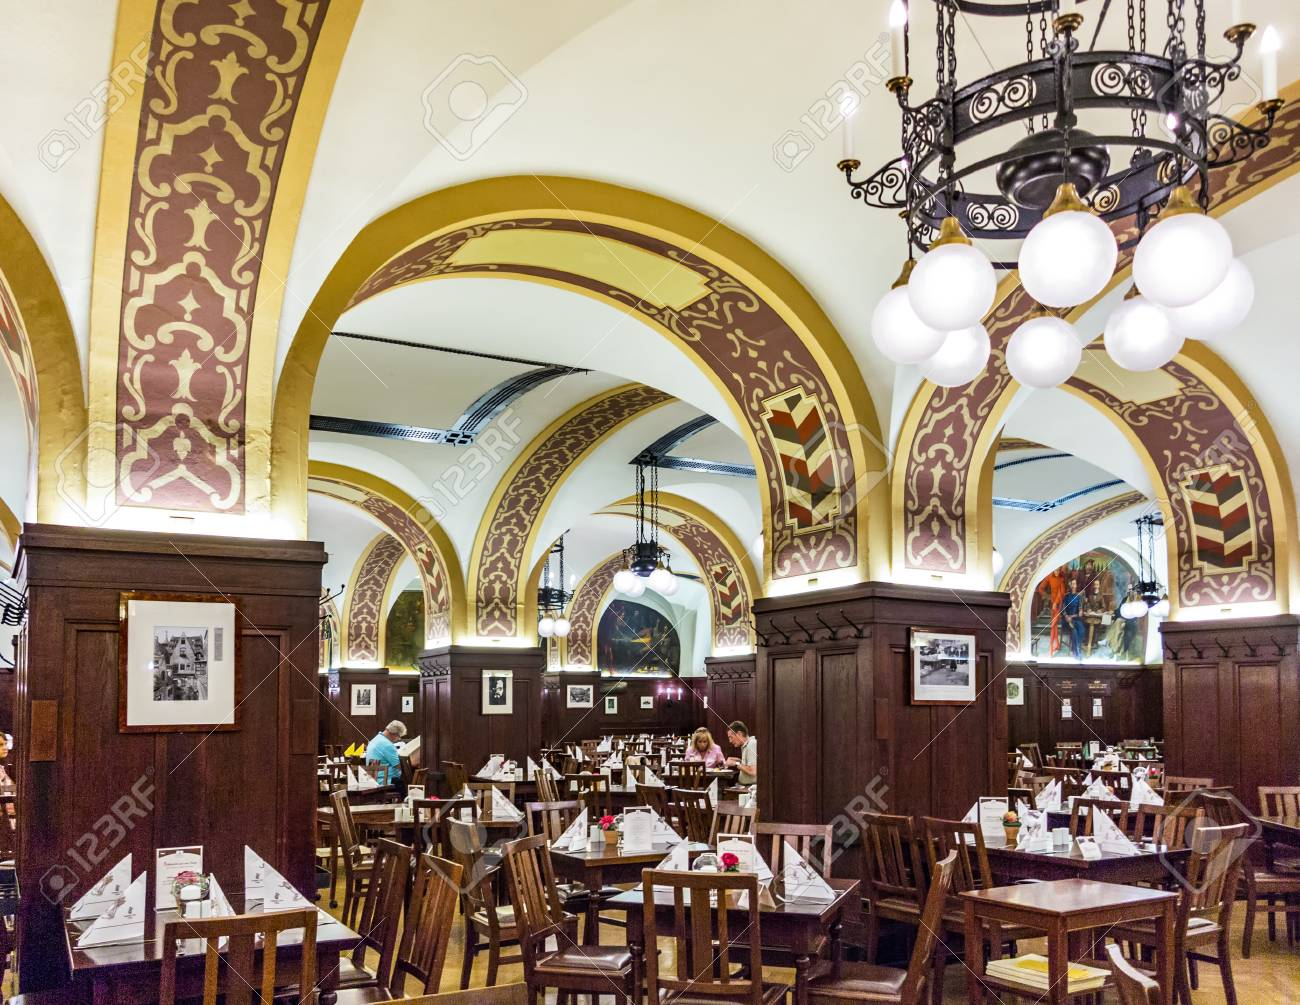 Leipzig Germany Aug 24 2013 The Famous Restaurant Auerbachs Stock Photo Picture And Royalty Free Image Image 70710082